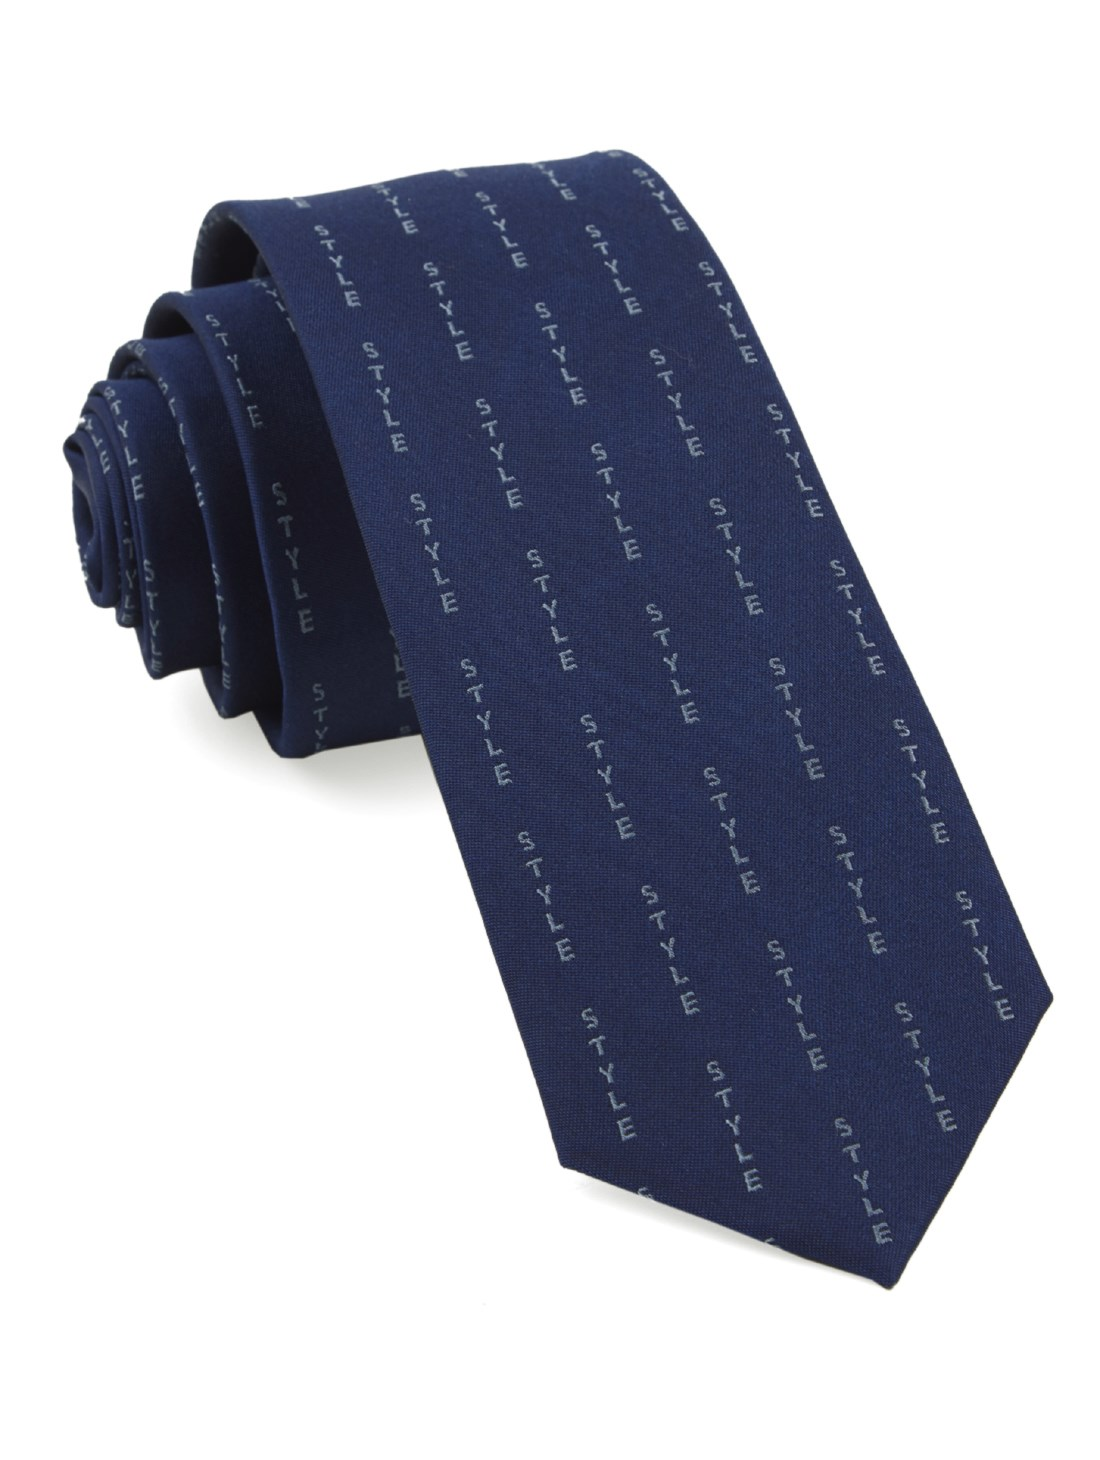 Style Pinstripe By Dwyane Wade by The Tie Bar